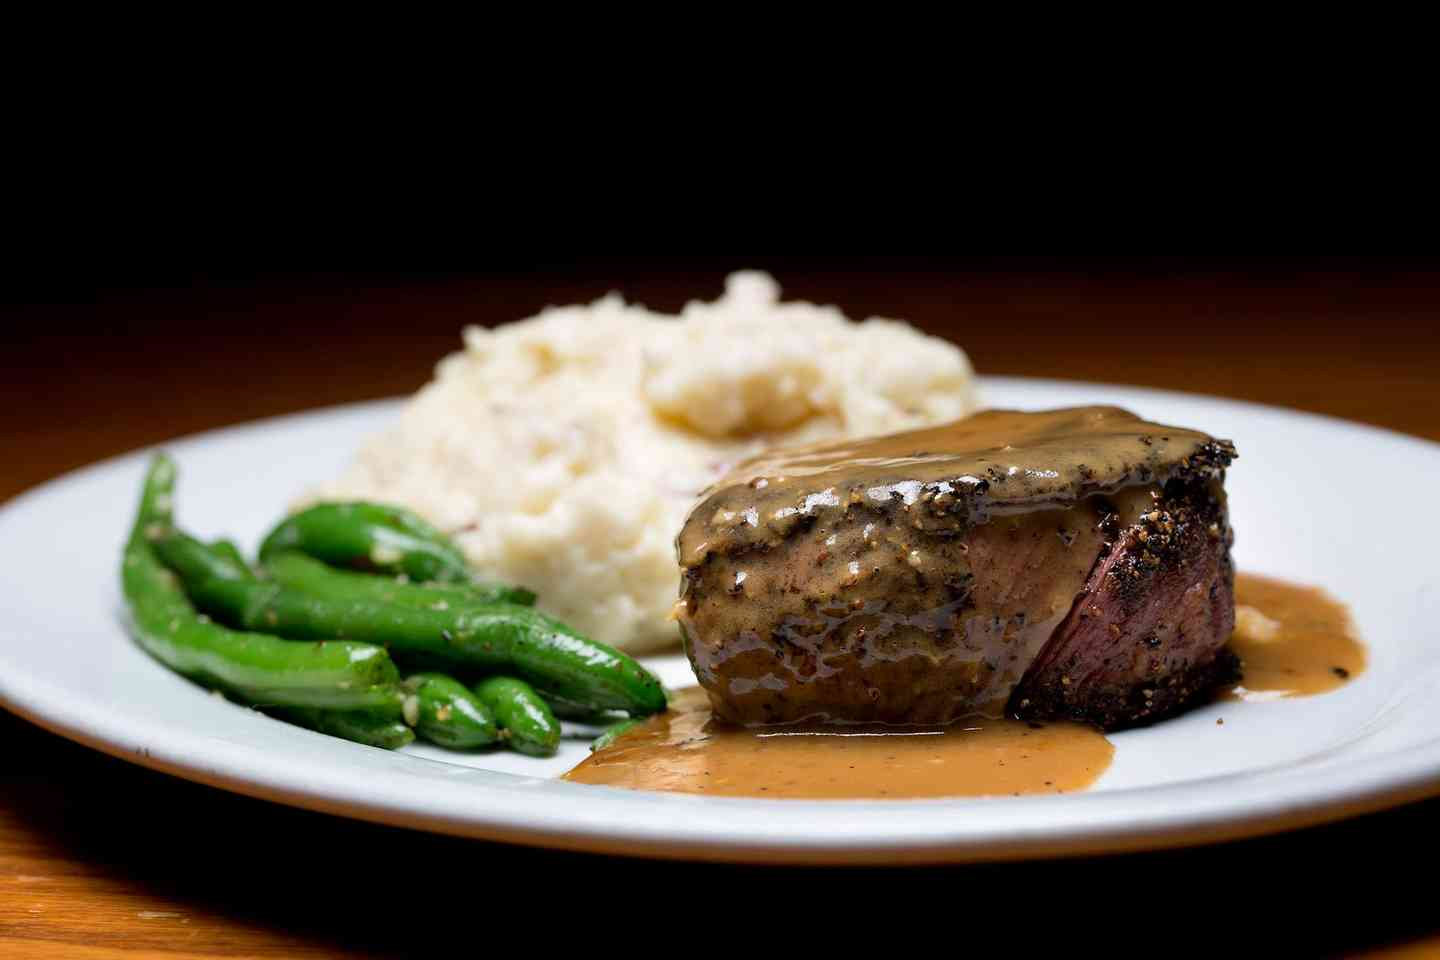 9 oz. Filet of Beef